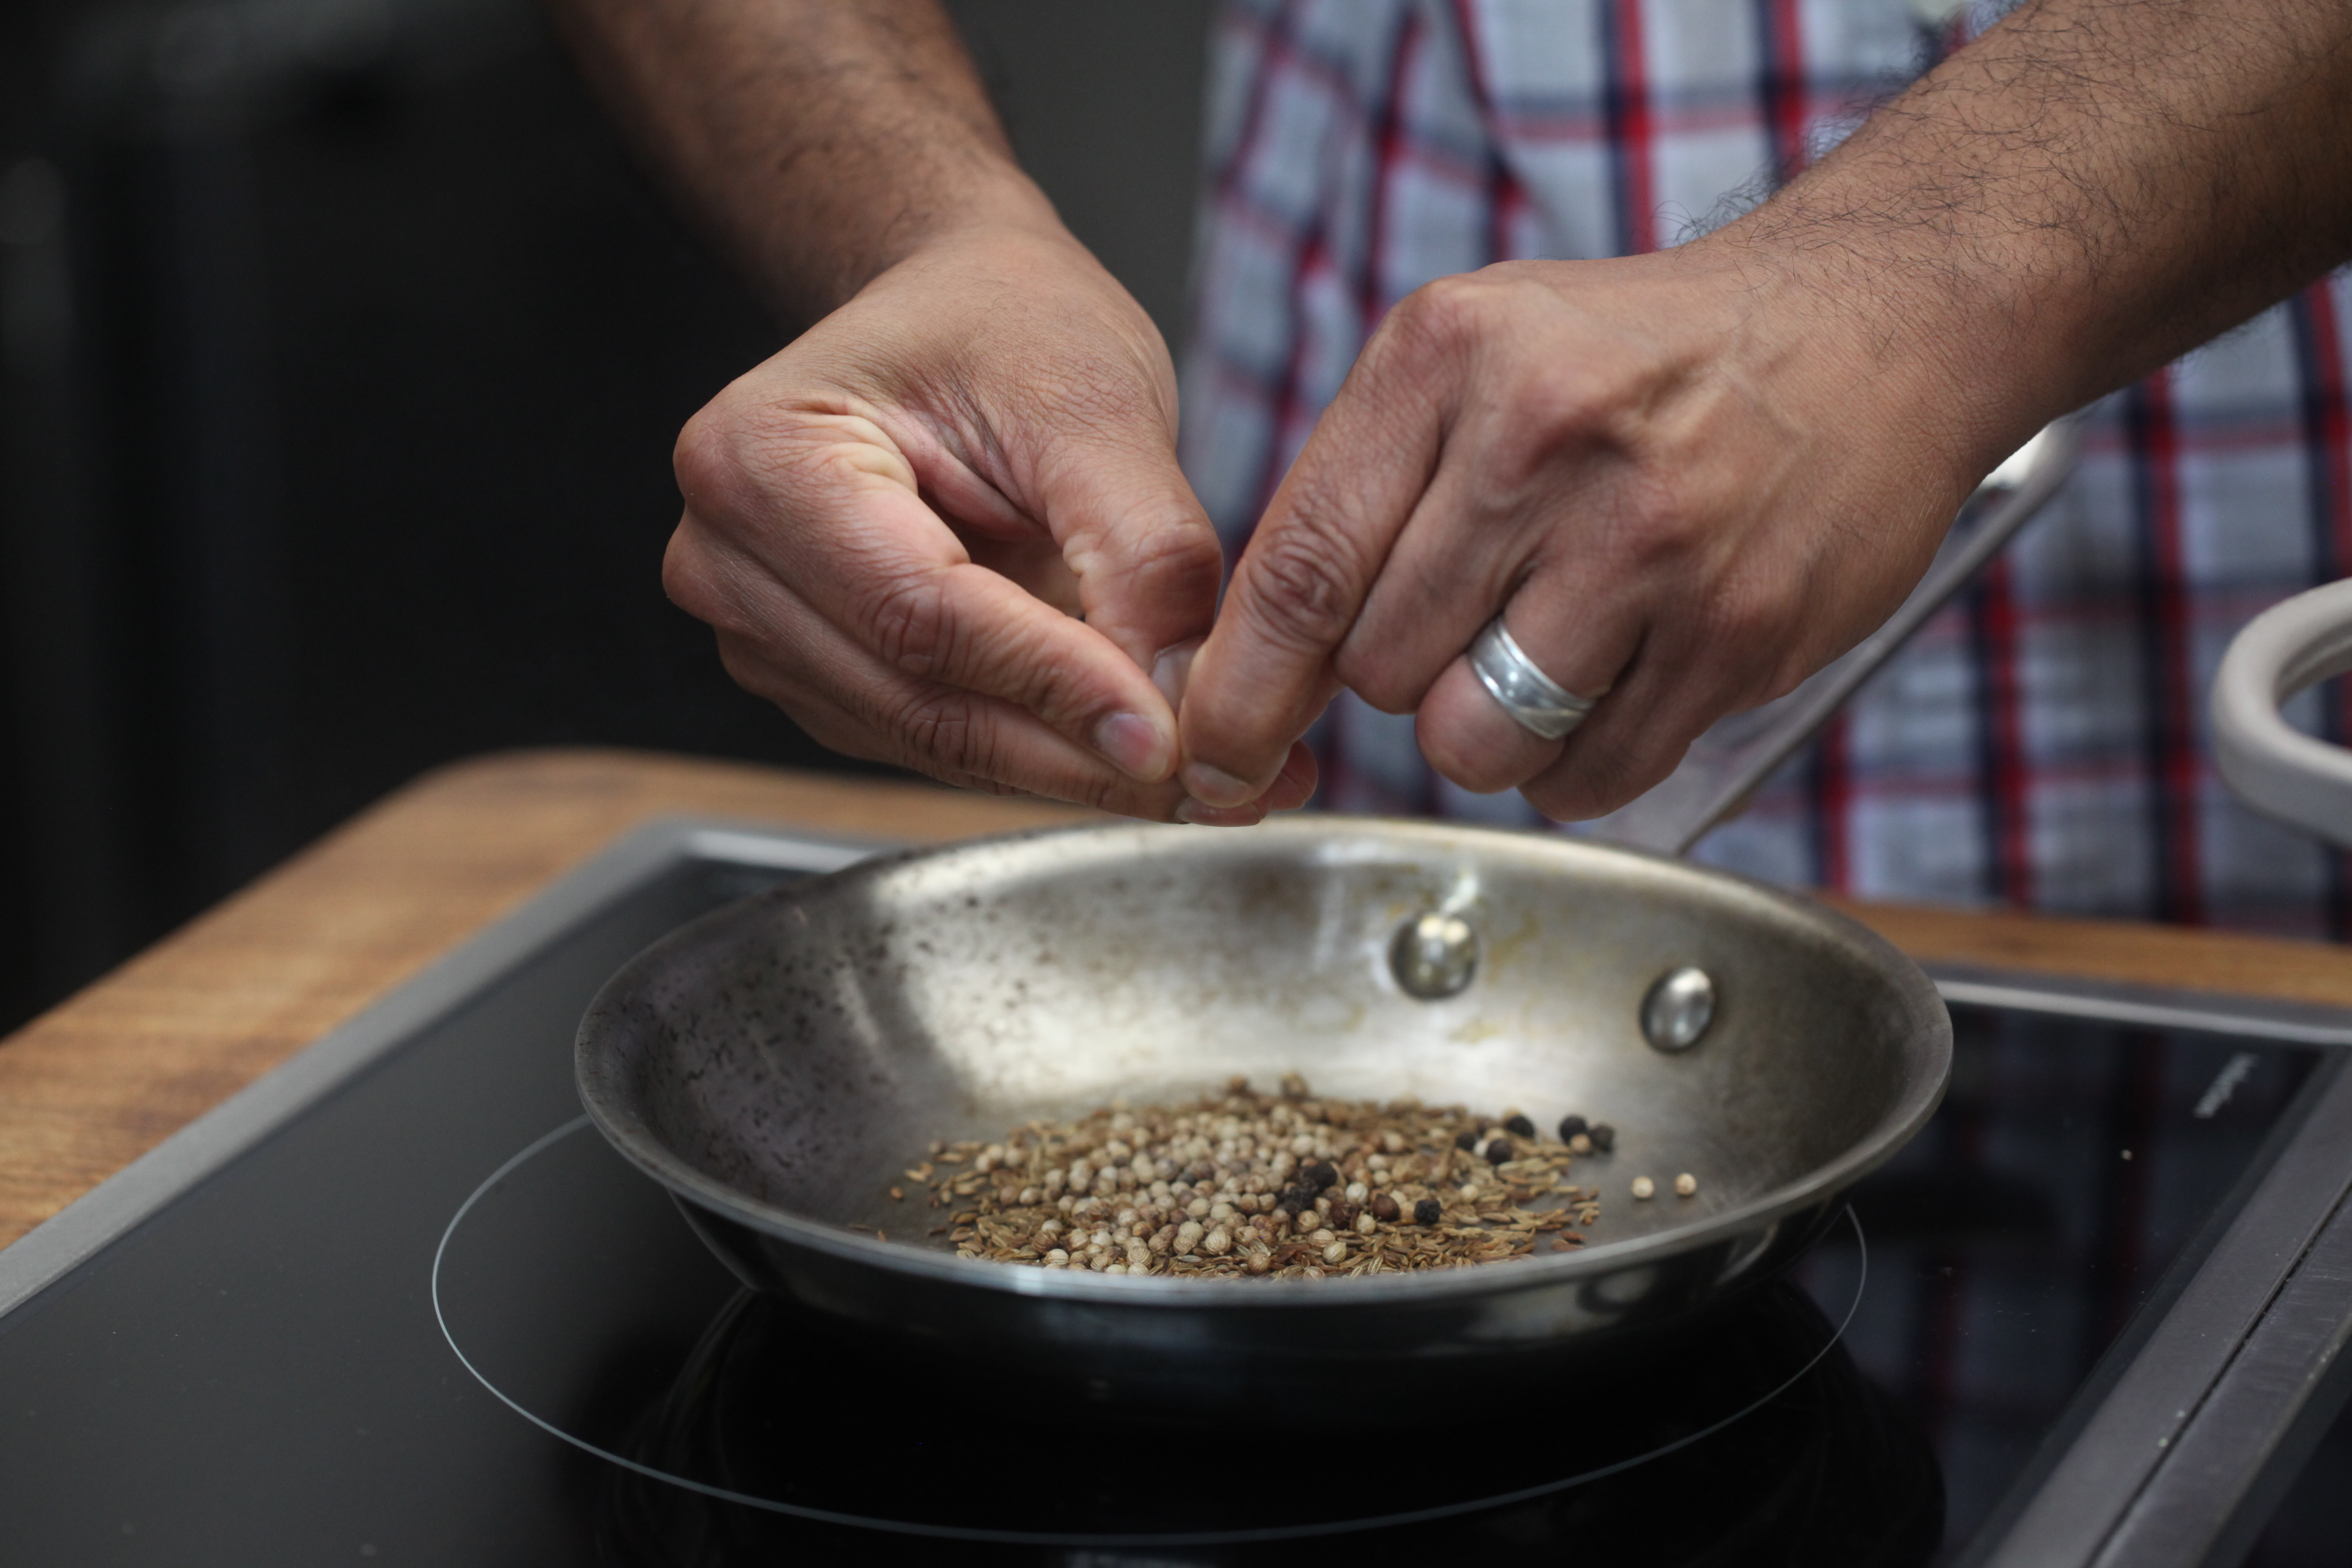 Hands prepping spices